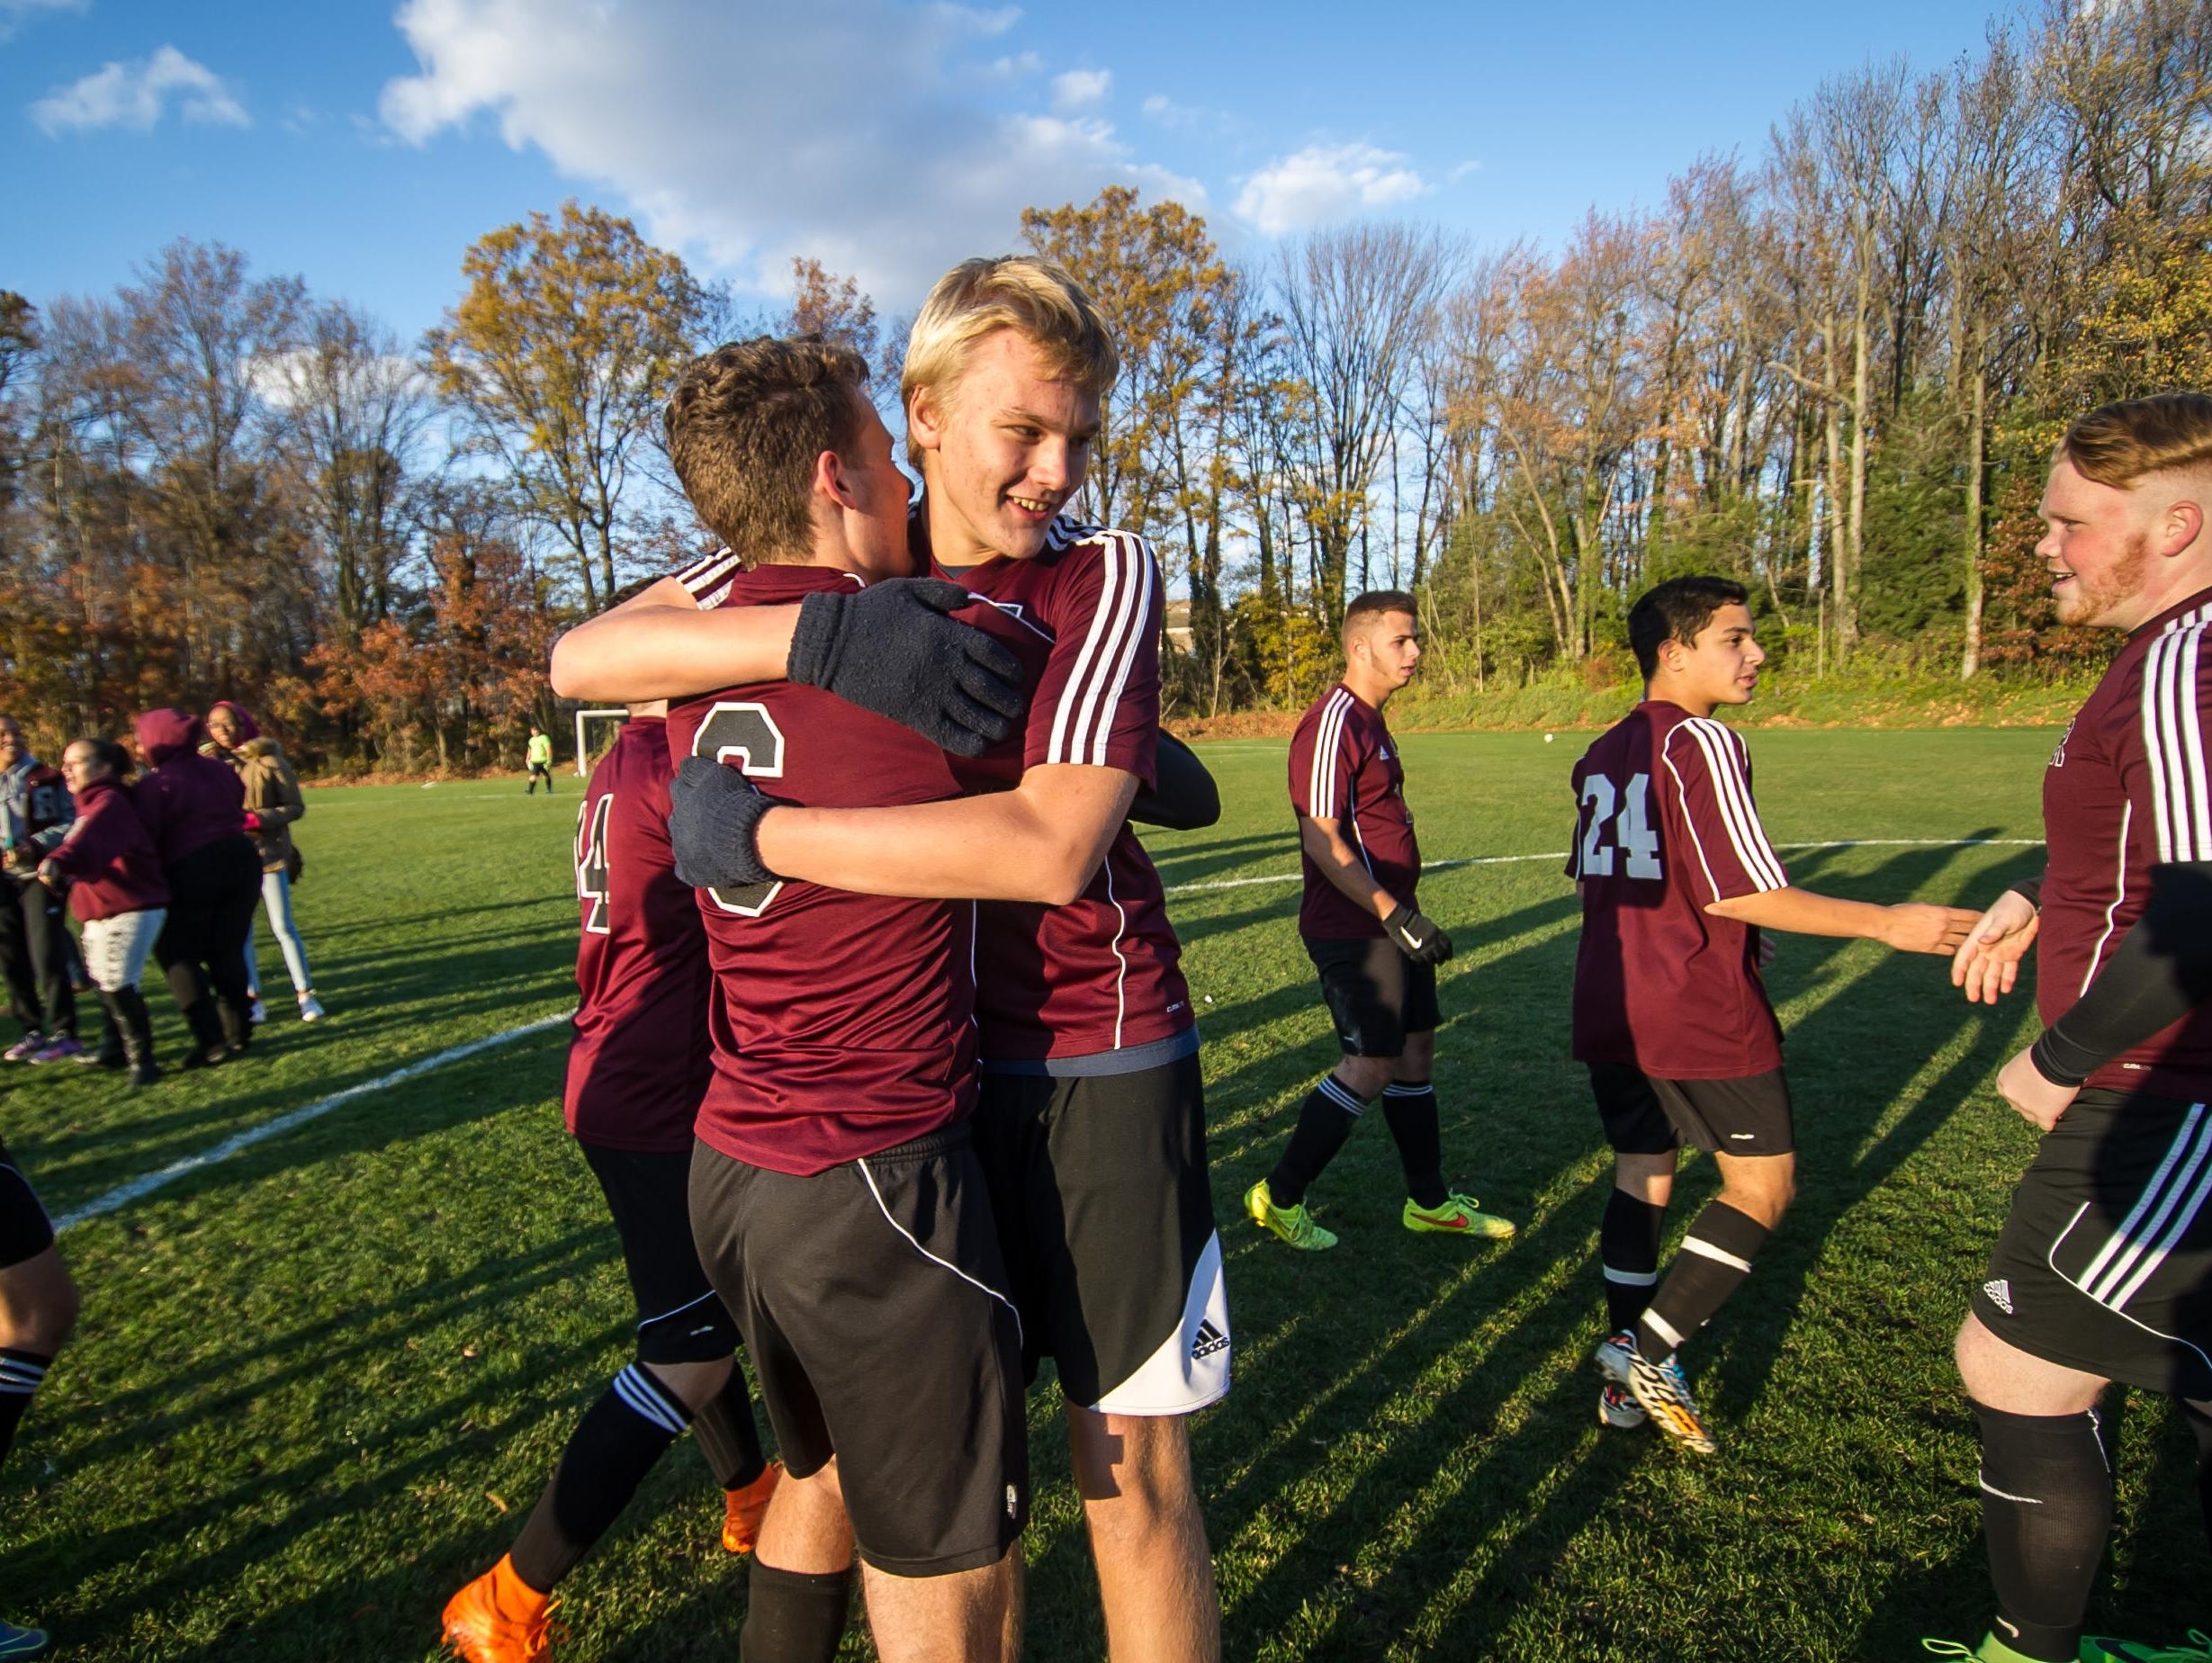 South River's Ian Sawicki (left) and Matt Pietrzyk celebrate after defeating Metuchen 2-0 in the NJSIAA Central Group I sectional final on Friday at Metuchen High School.